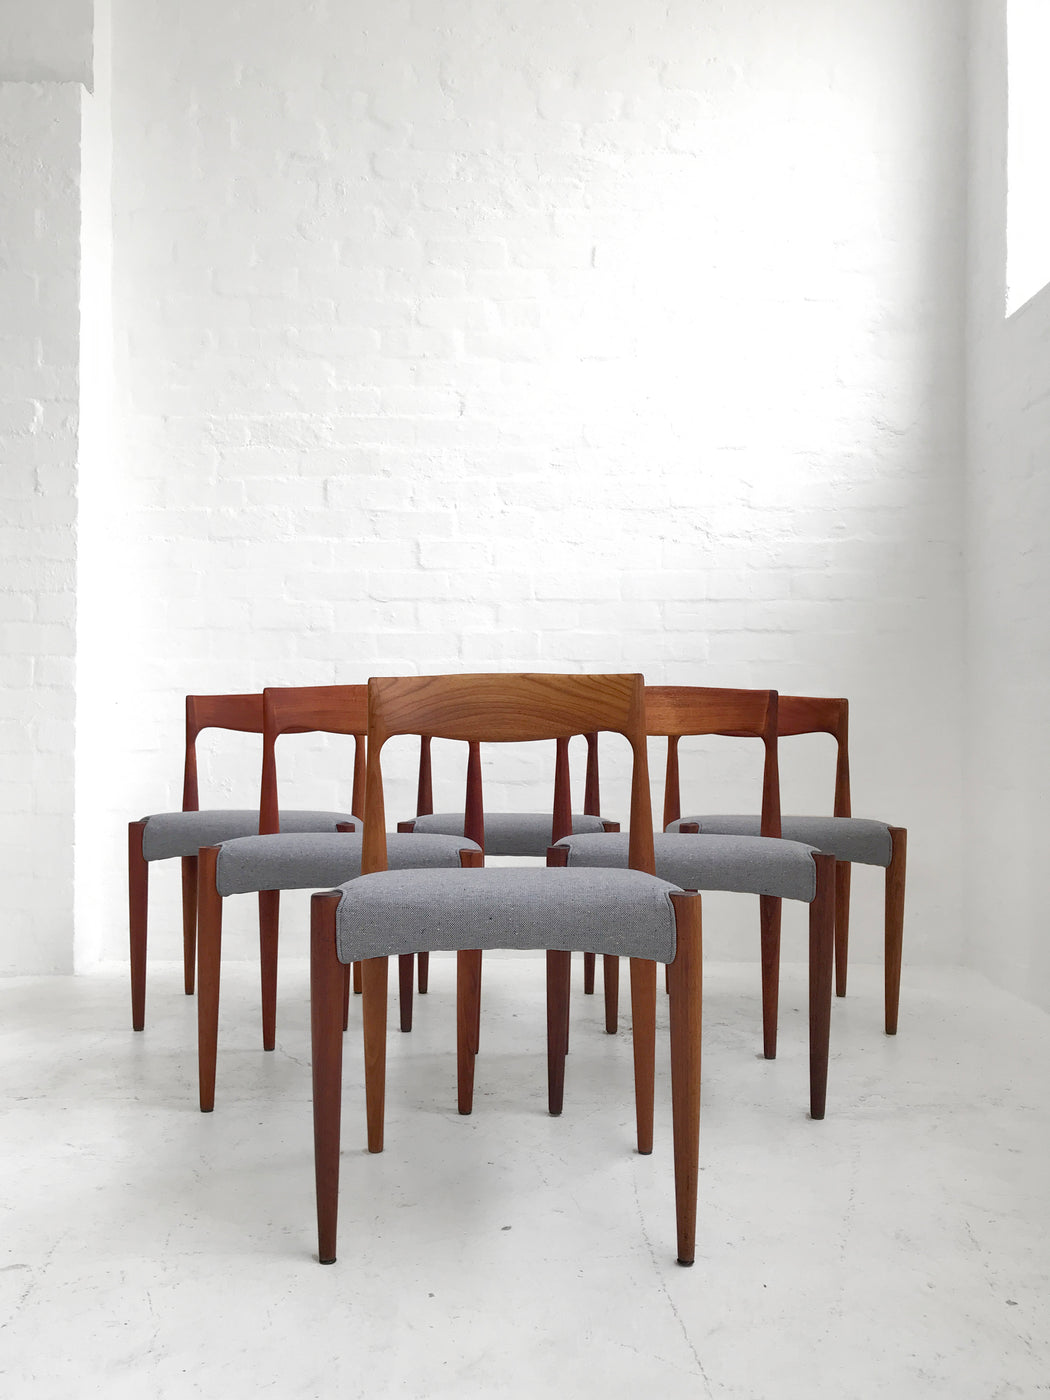 T.H.Brown Blackwood Dining Chairs